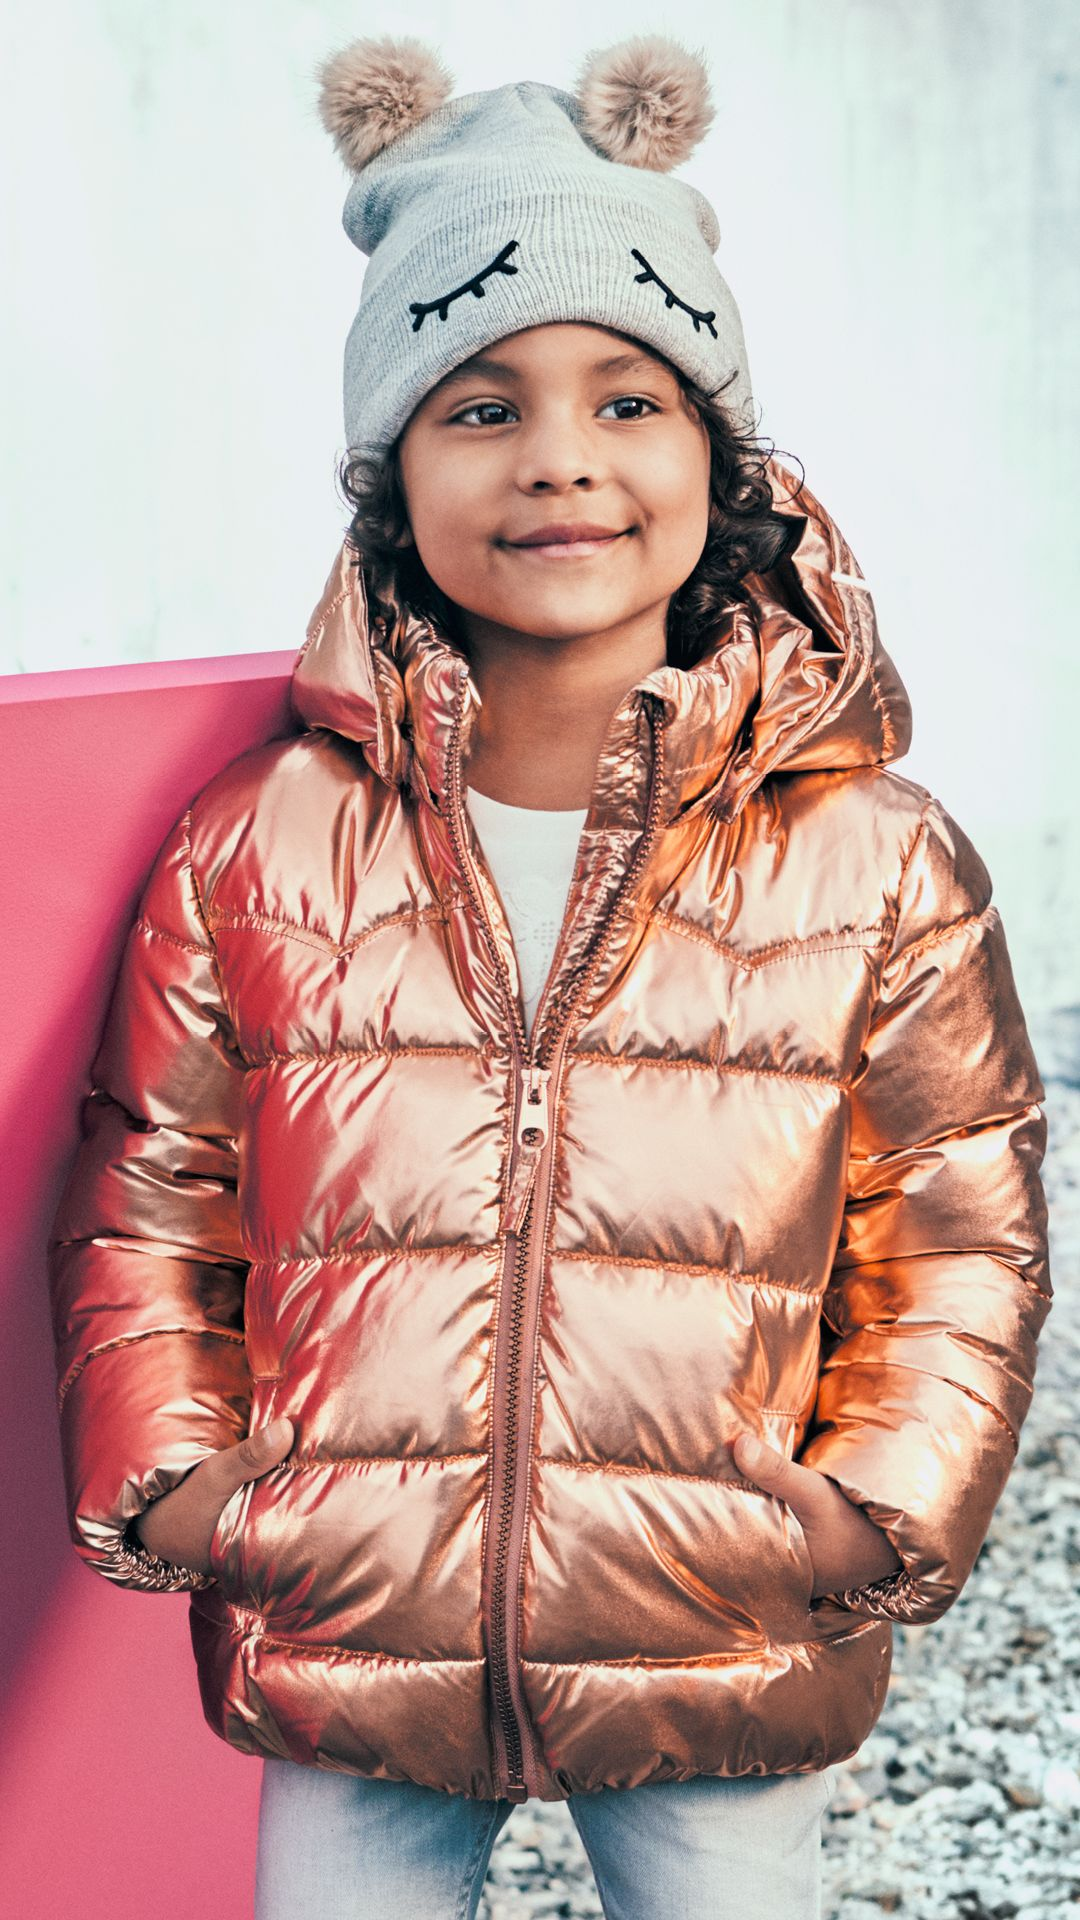 From Shiny Puffer Jackets To Padded Parkas Discover This Season S Jackets For Kids H M Kids Zara Kids Girls Kids Outfits Kids Couture [ 1920 x 1080 Pixel ]